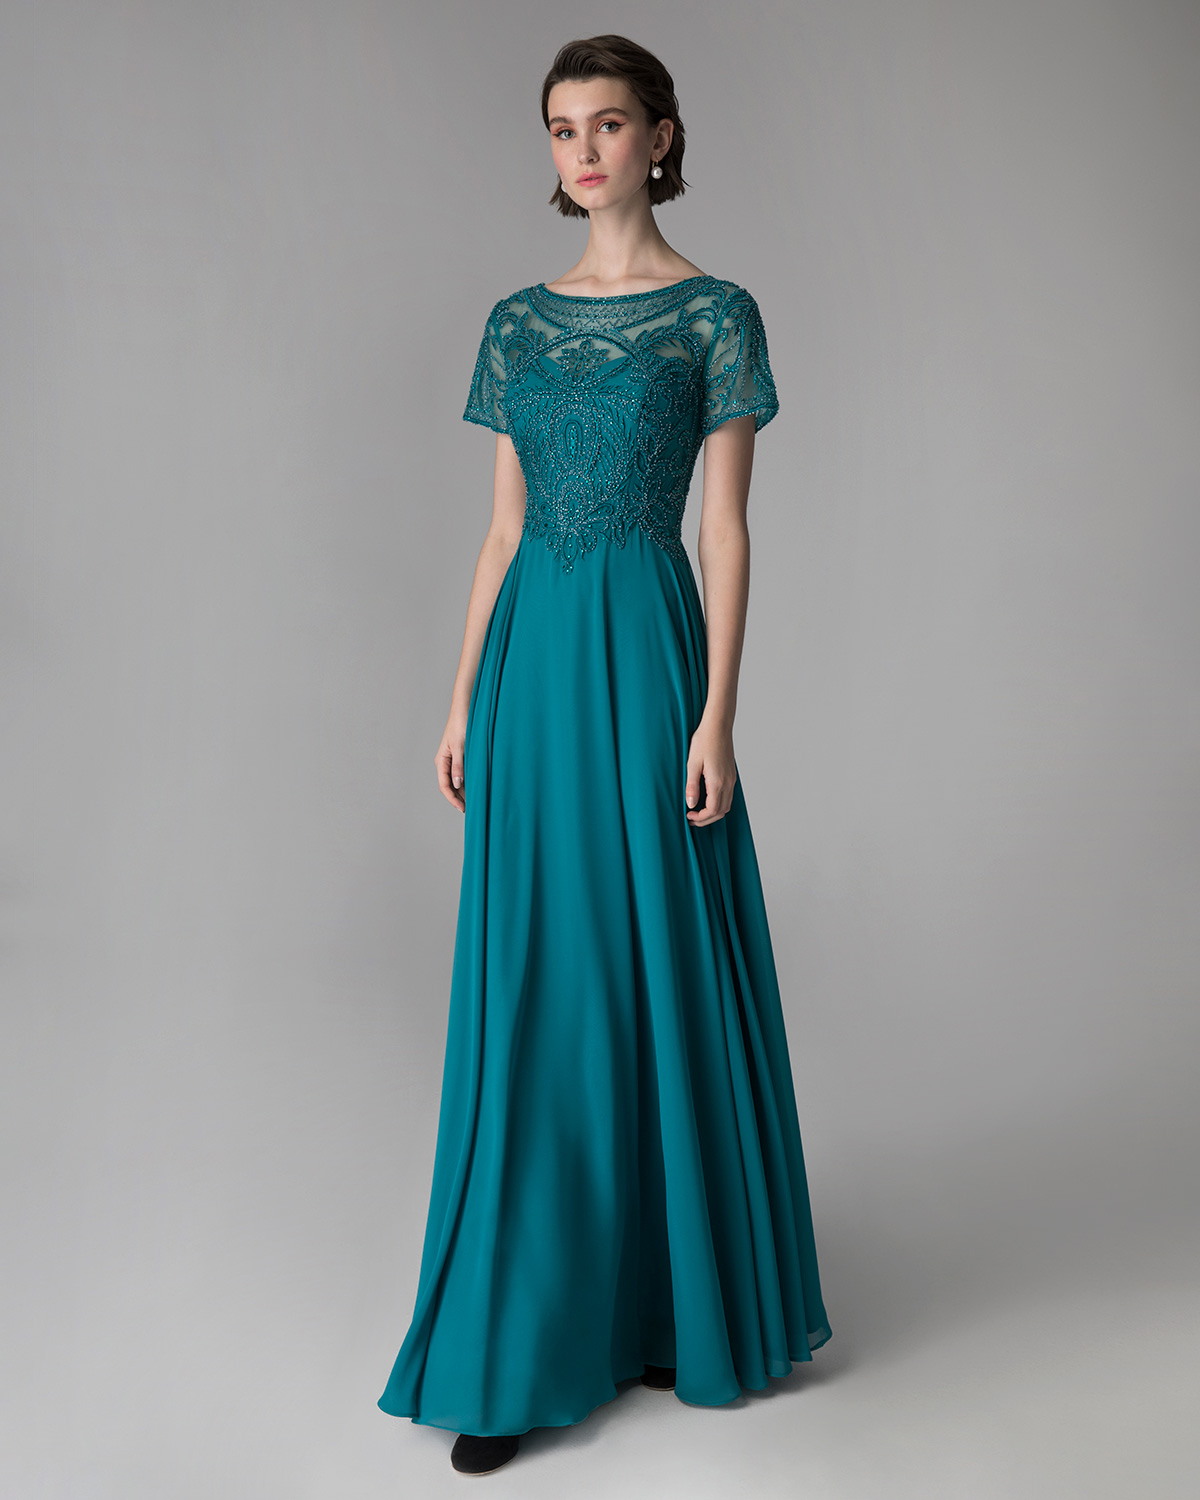 Classic Dresses / Long evening dress for the mother of the bride with fully beaded top and short sleeves